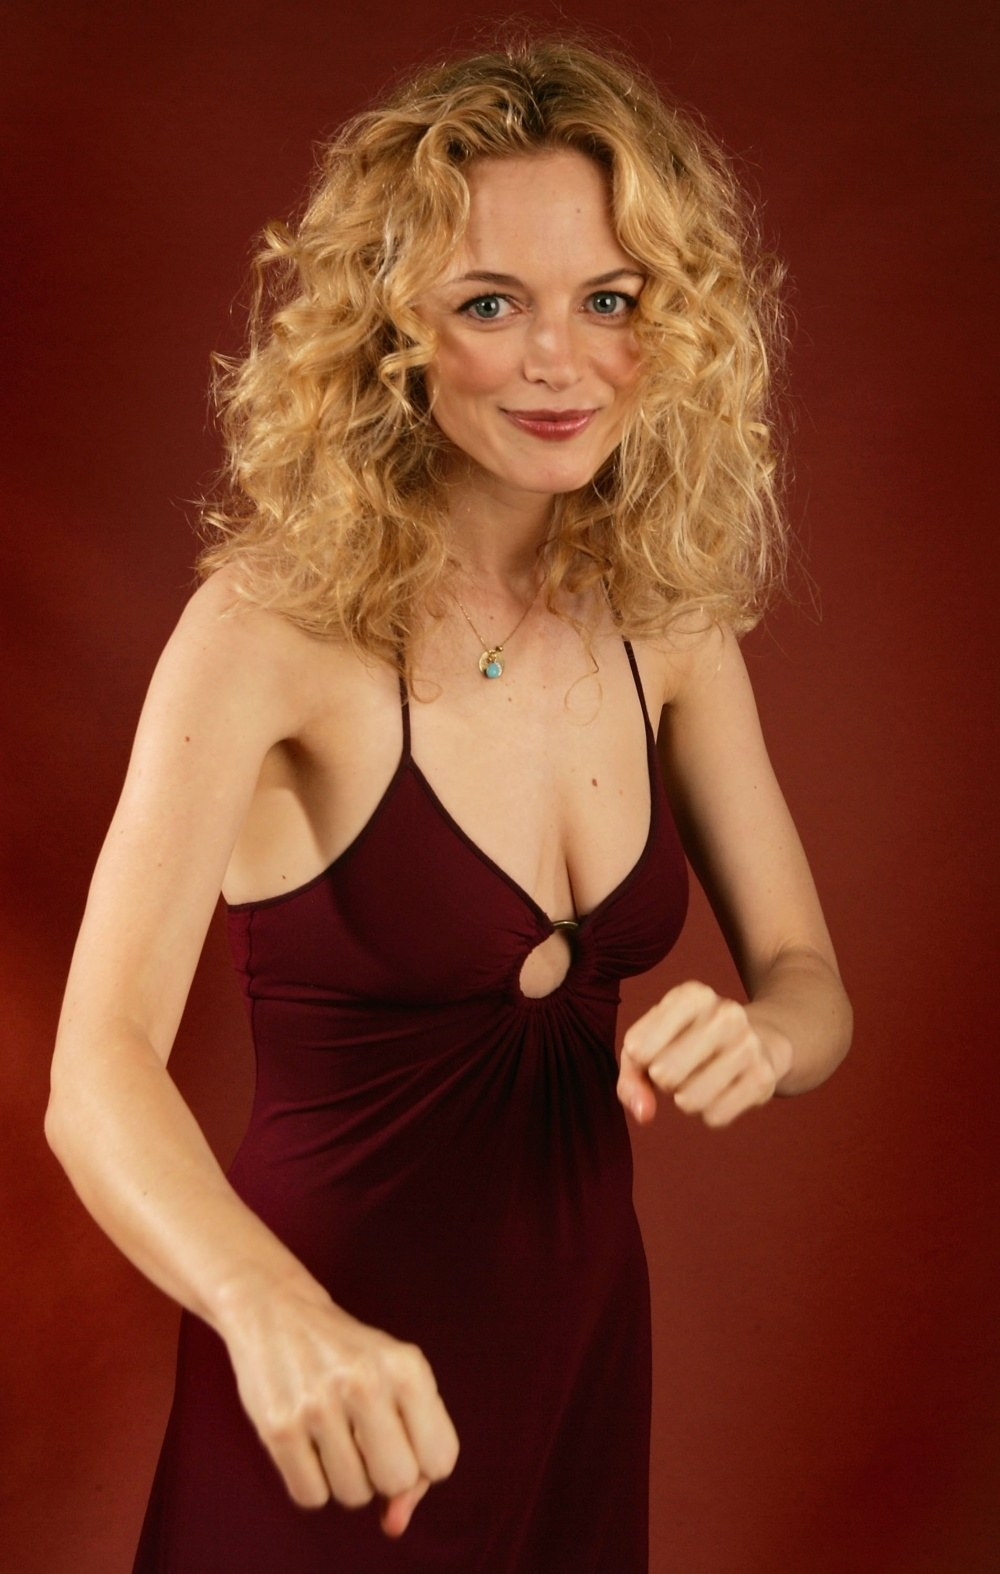 49 Hottest Heather Graham Bikini Pictures Will Make Your